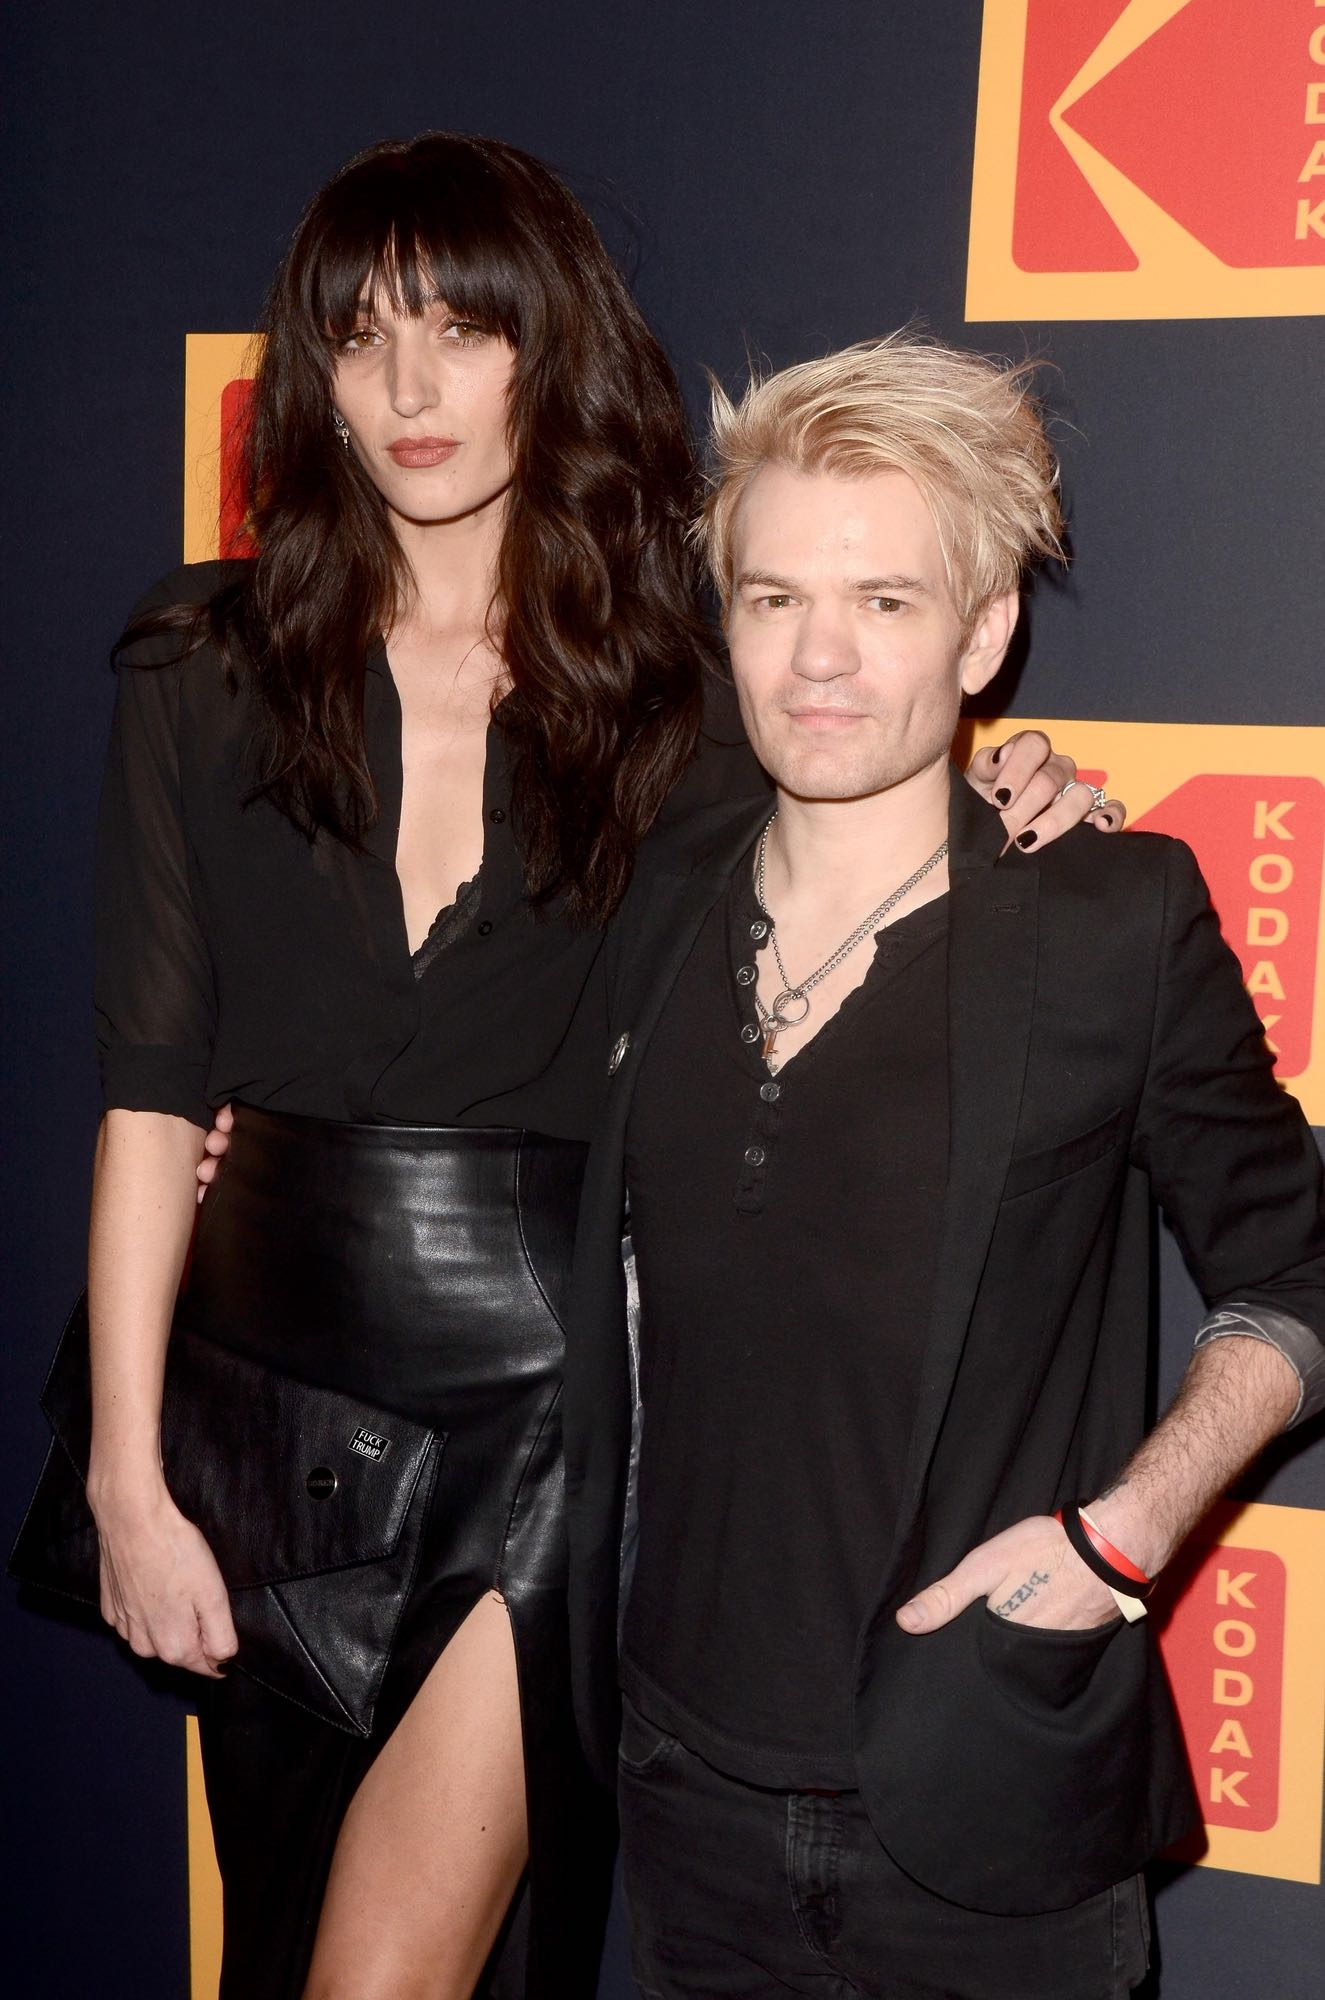 """Deryck Whibley Height - 5'7"""""""